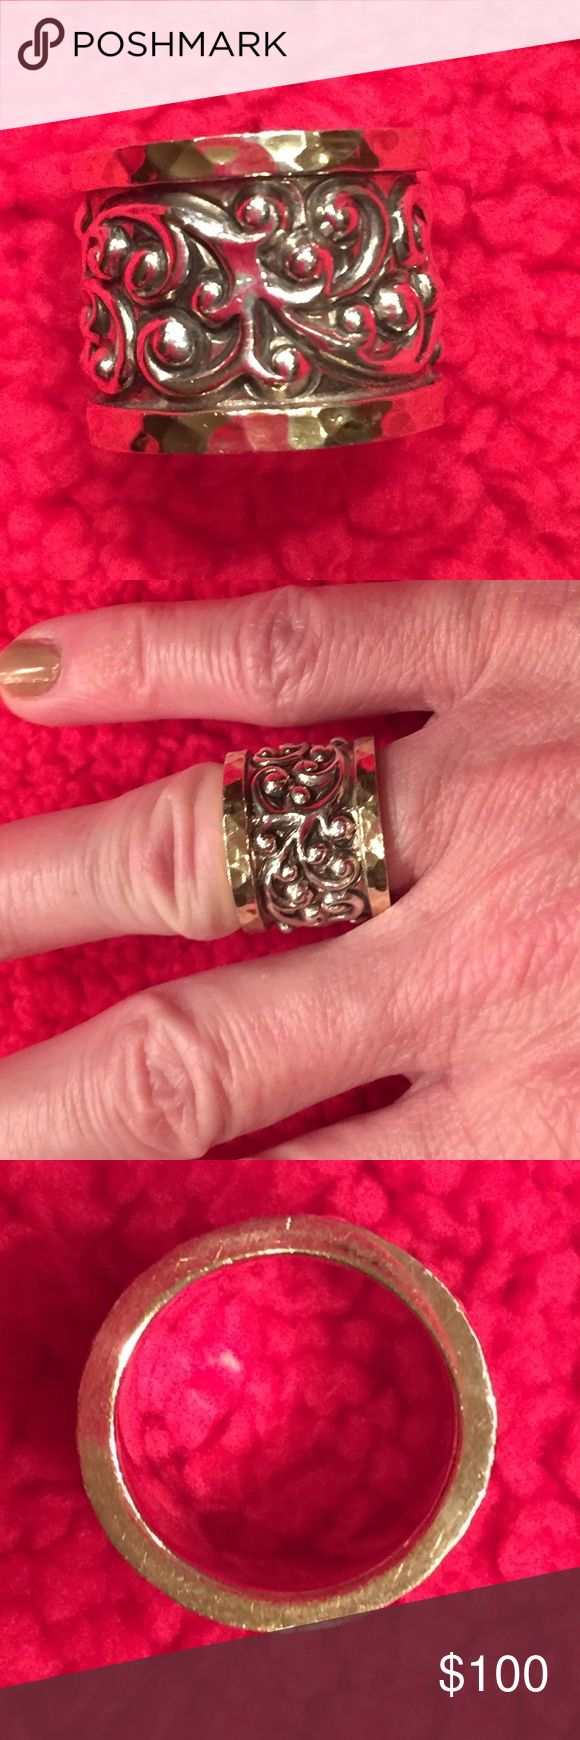 34 best Lois Hill Rings images on Pinterest   Lois hill jewelry ...